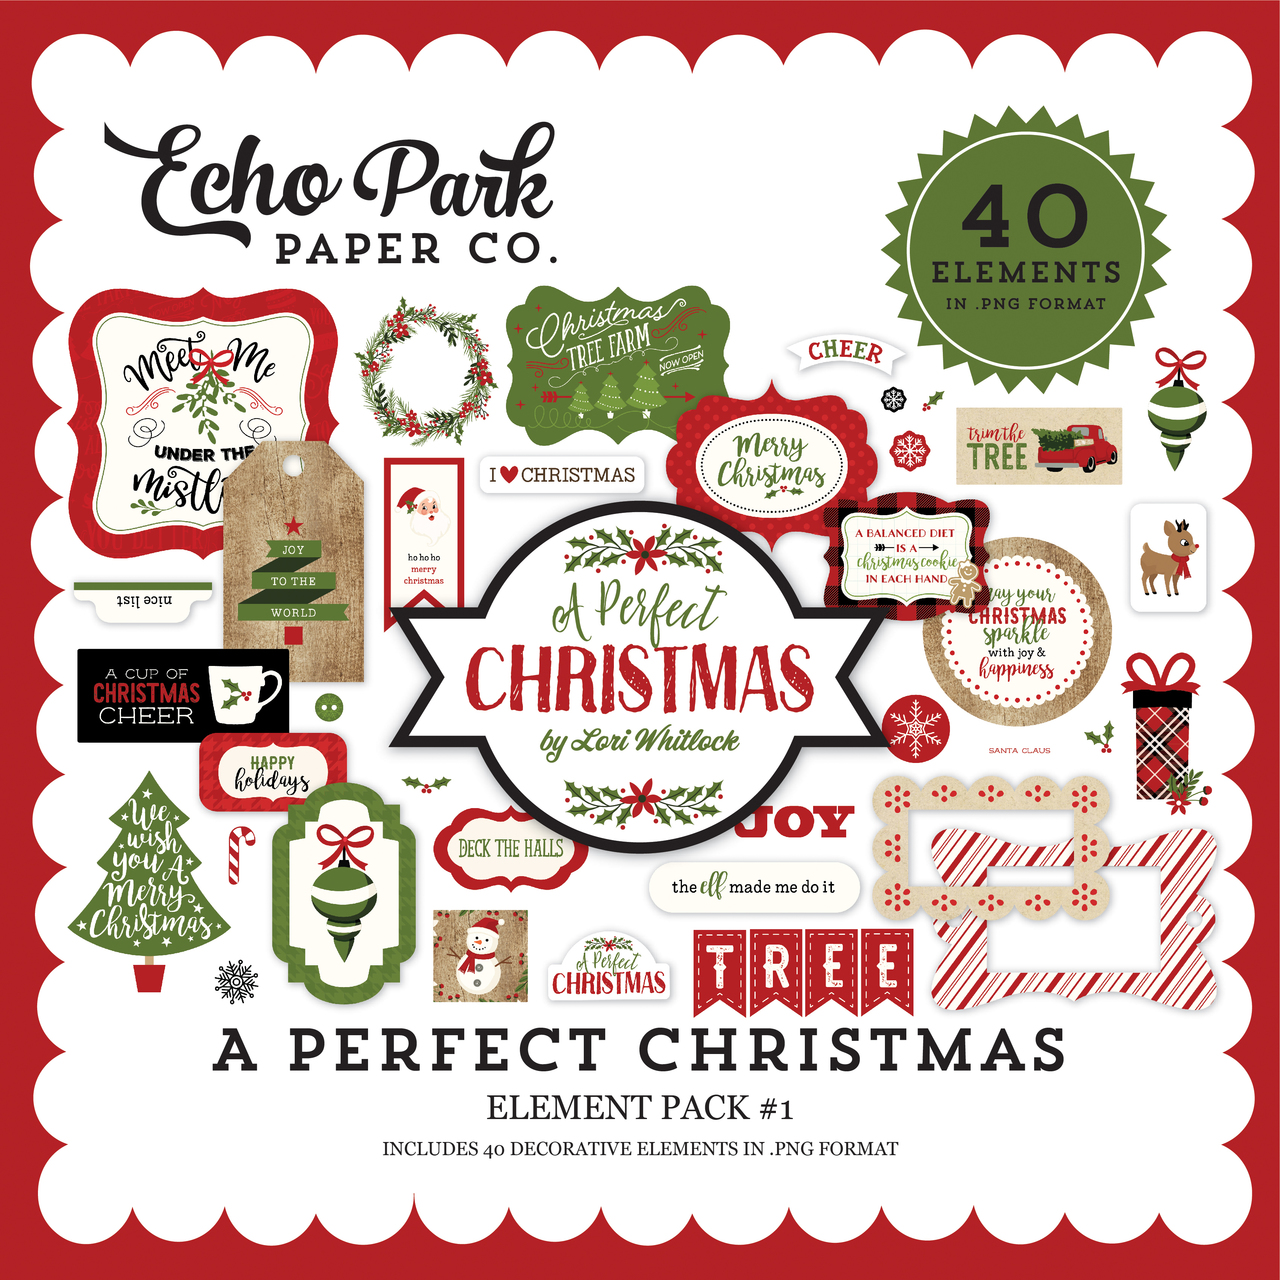 A Perfect Christmas Element Pack #1